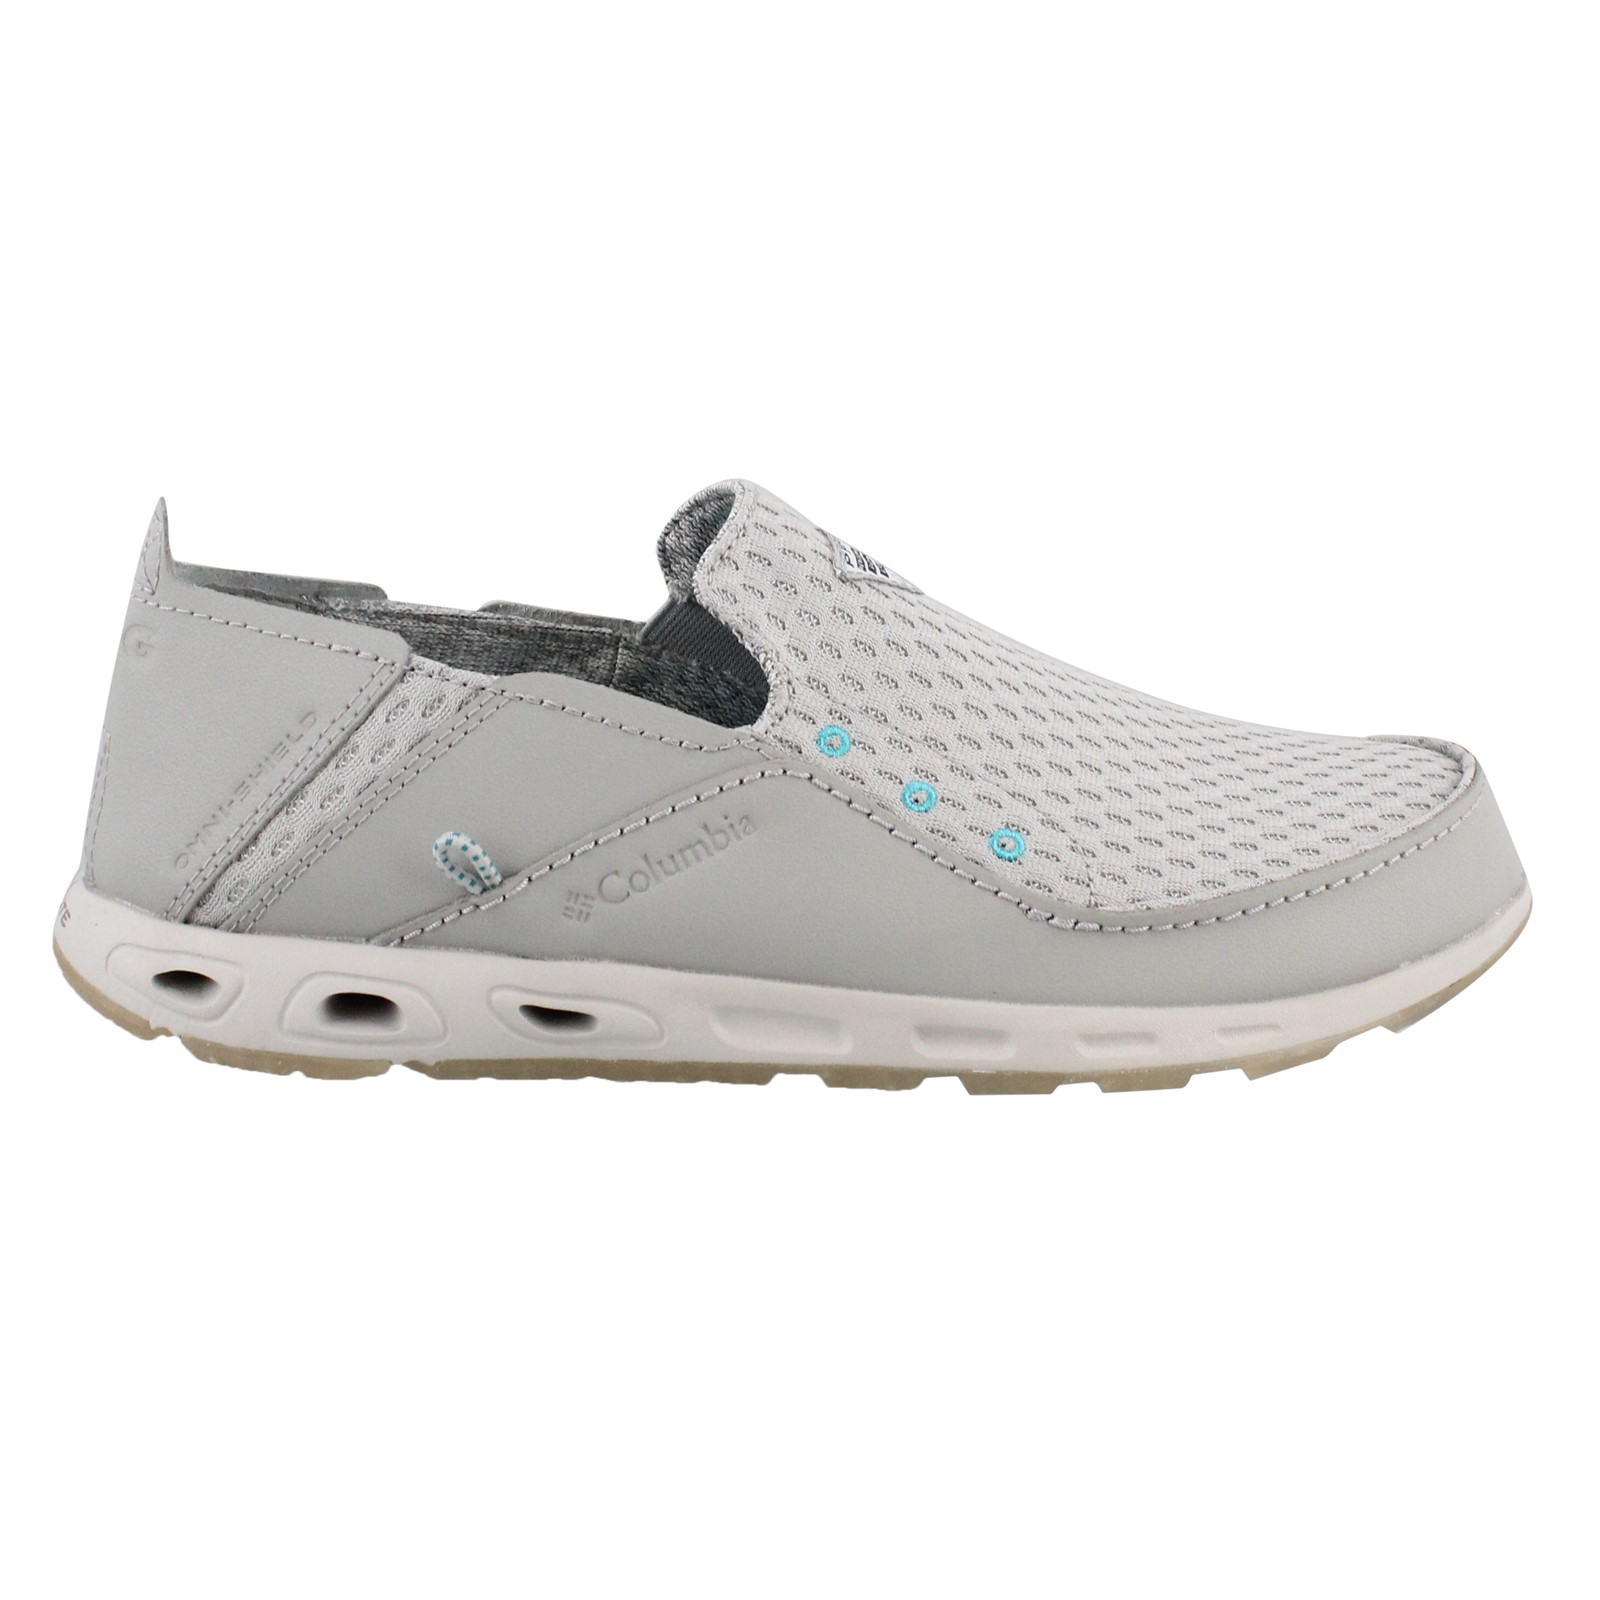 Men's Columbia Sportswear, Bahama Vent Marlin PFG Slip on Shoes